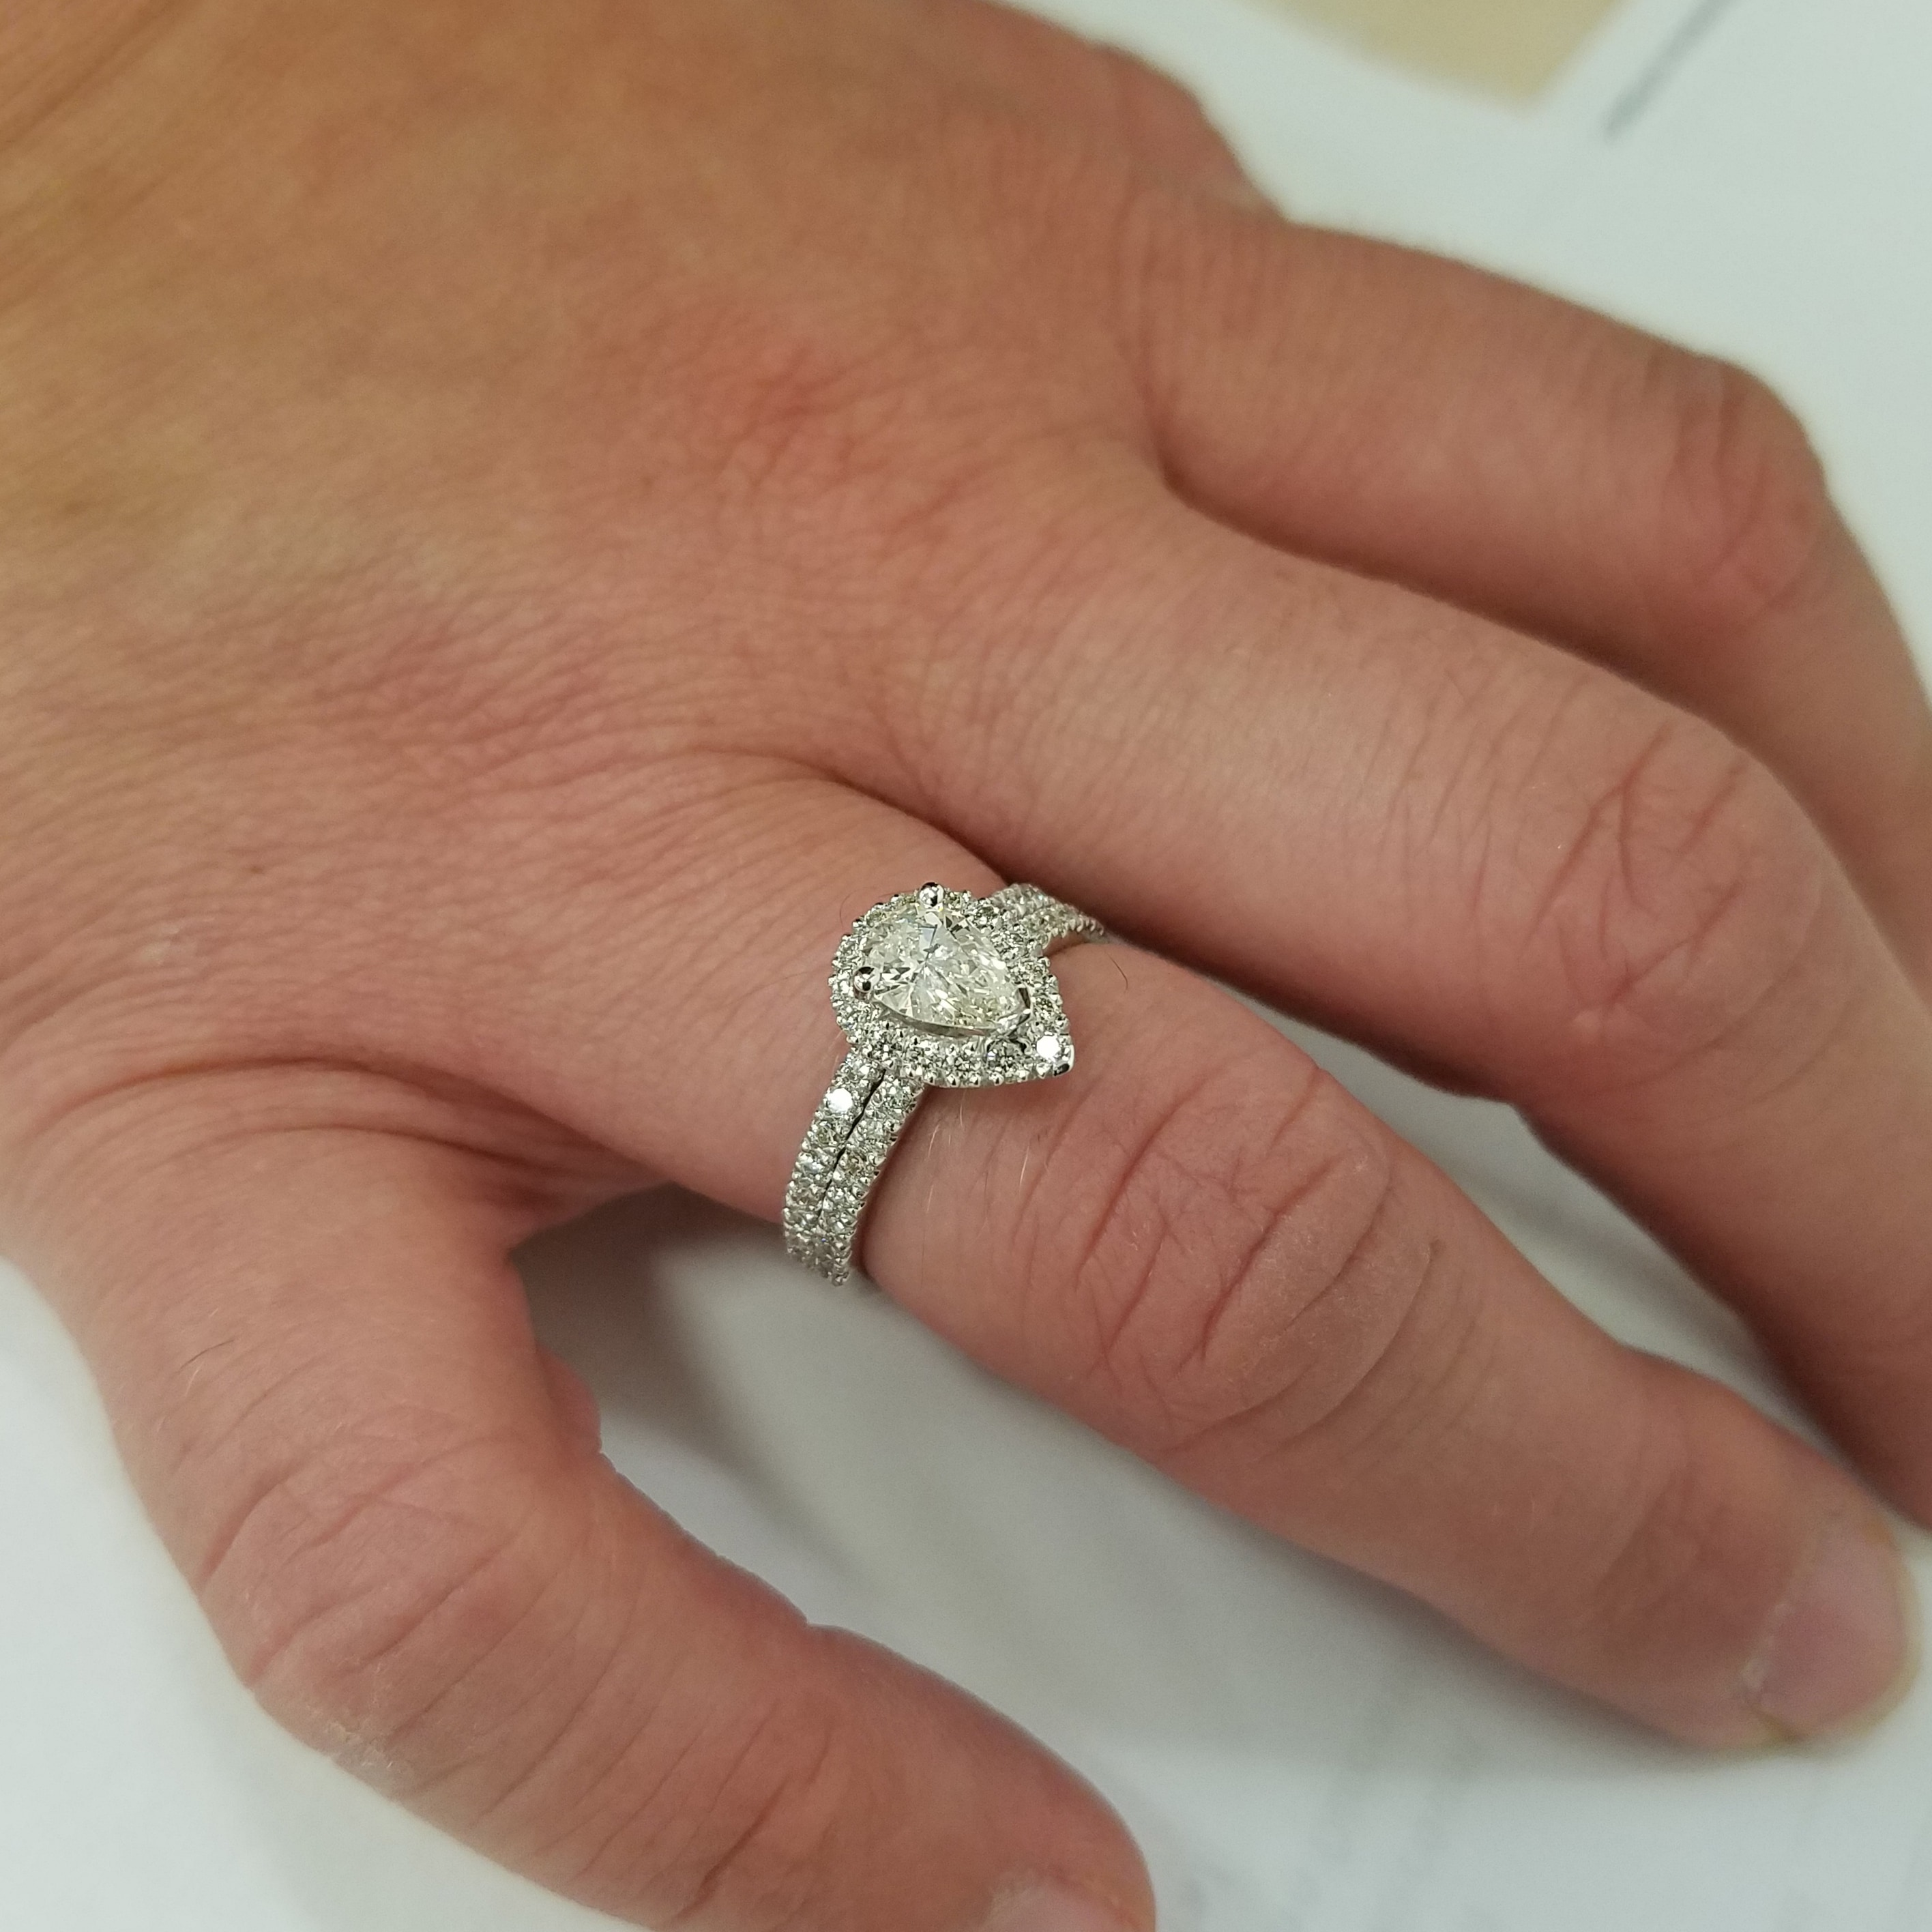 unique and rings band wedding my custom shaped with marquise pin matched ring v platinum ct baguette diamond halo a made side engagement